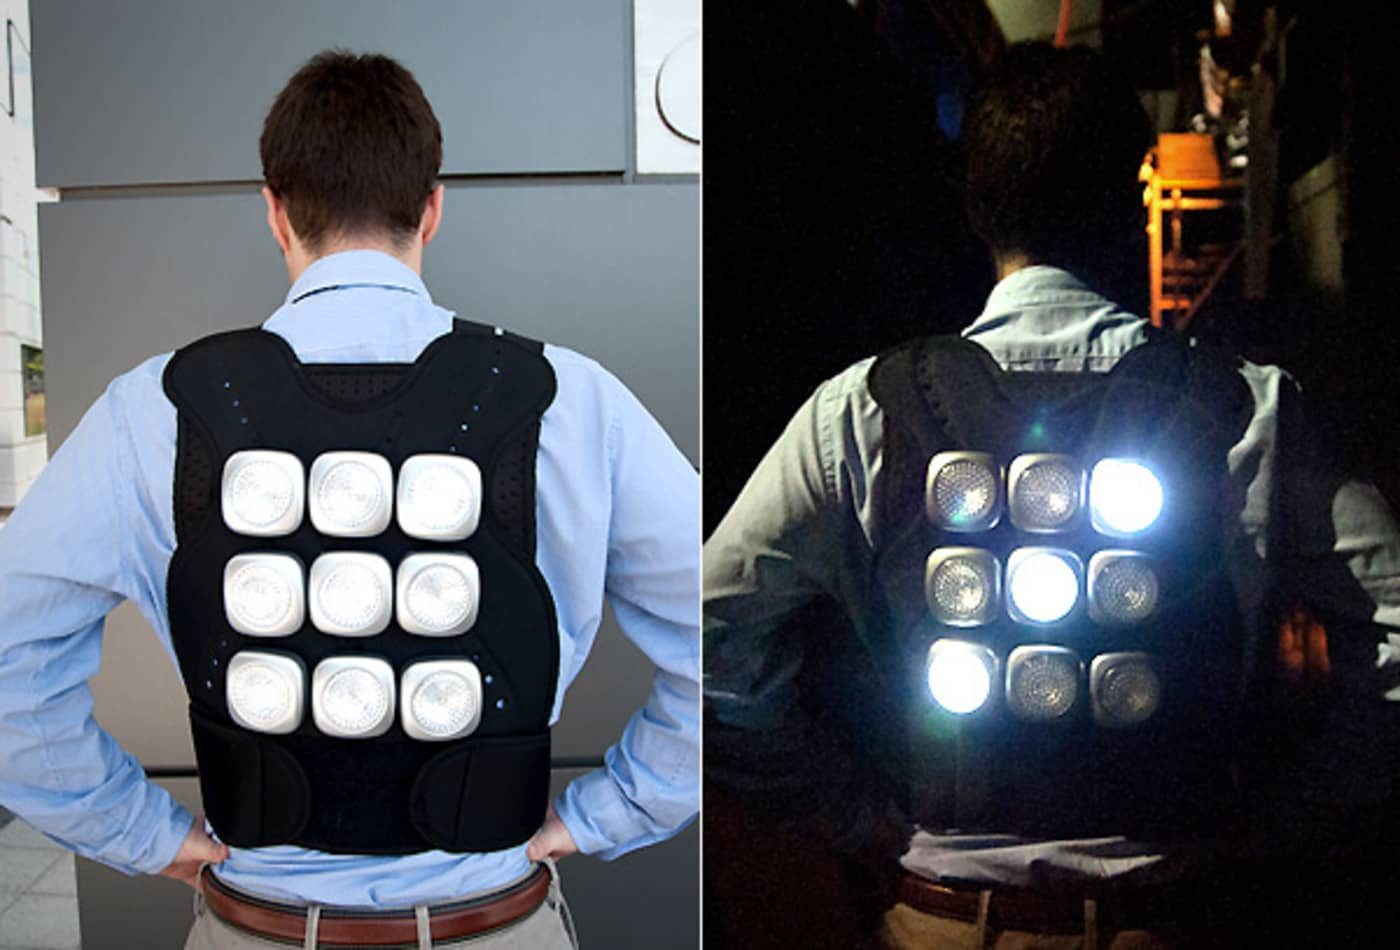 CNBC_inventions_by_kids_Tic_Tac_Vest.jpg